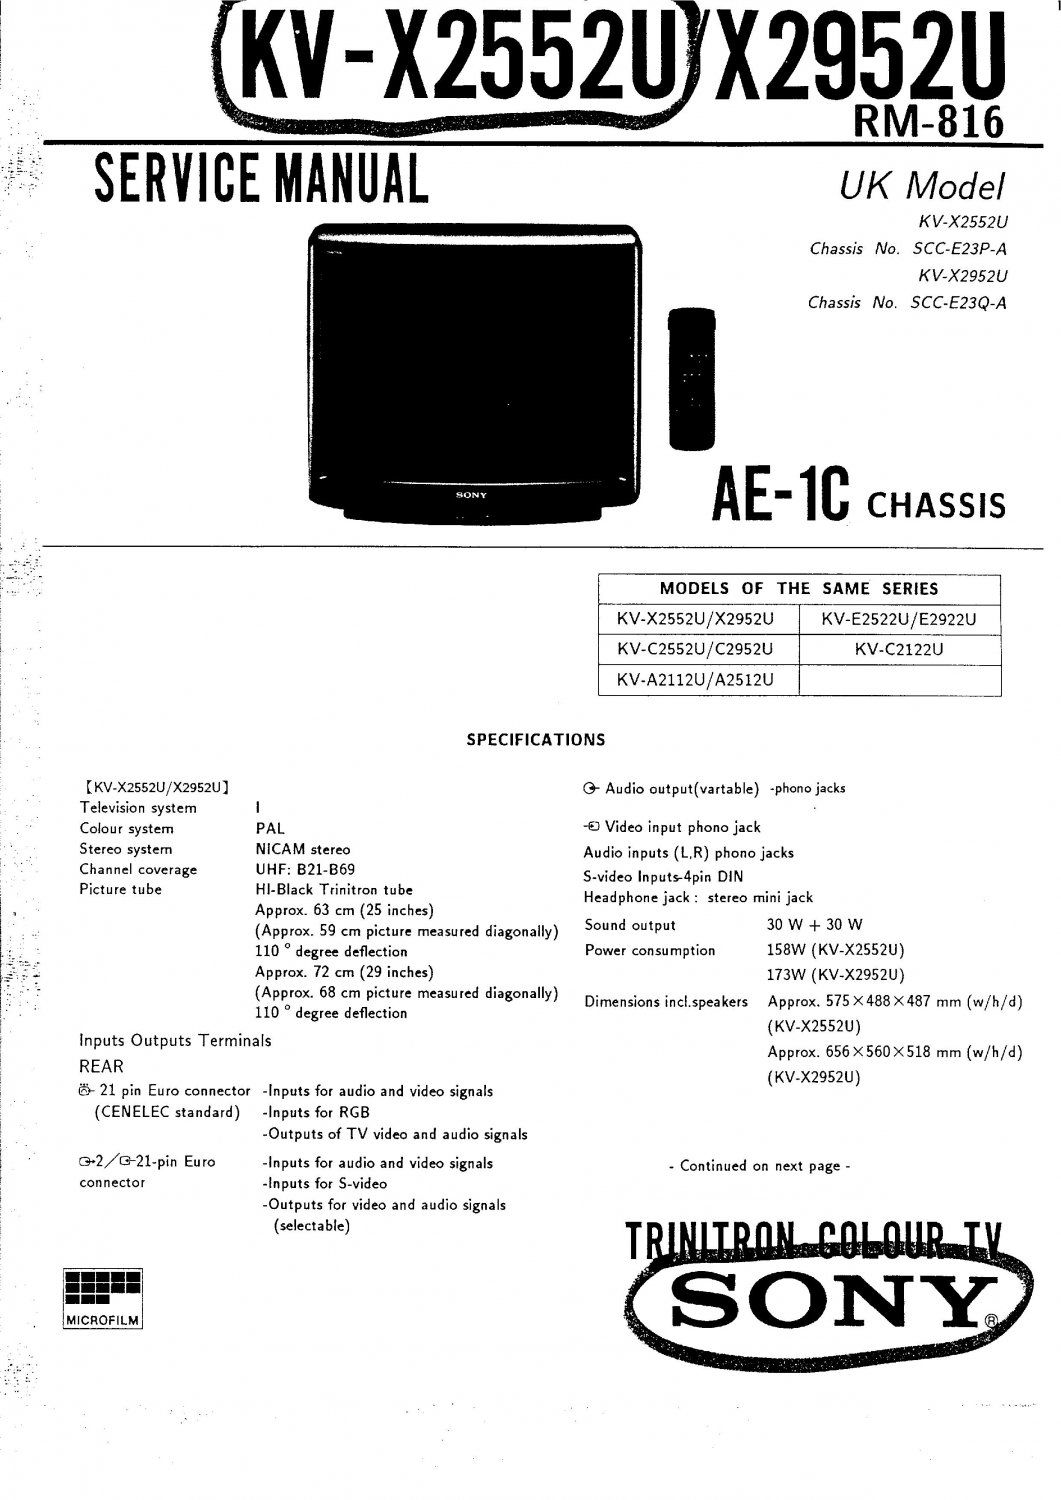 sony ae1c chassis television service manual pdf download rh ecrater co uk